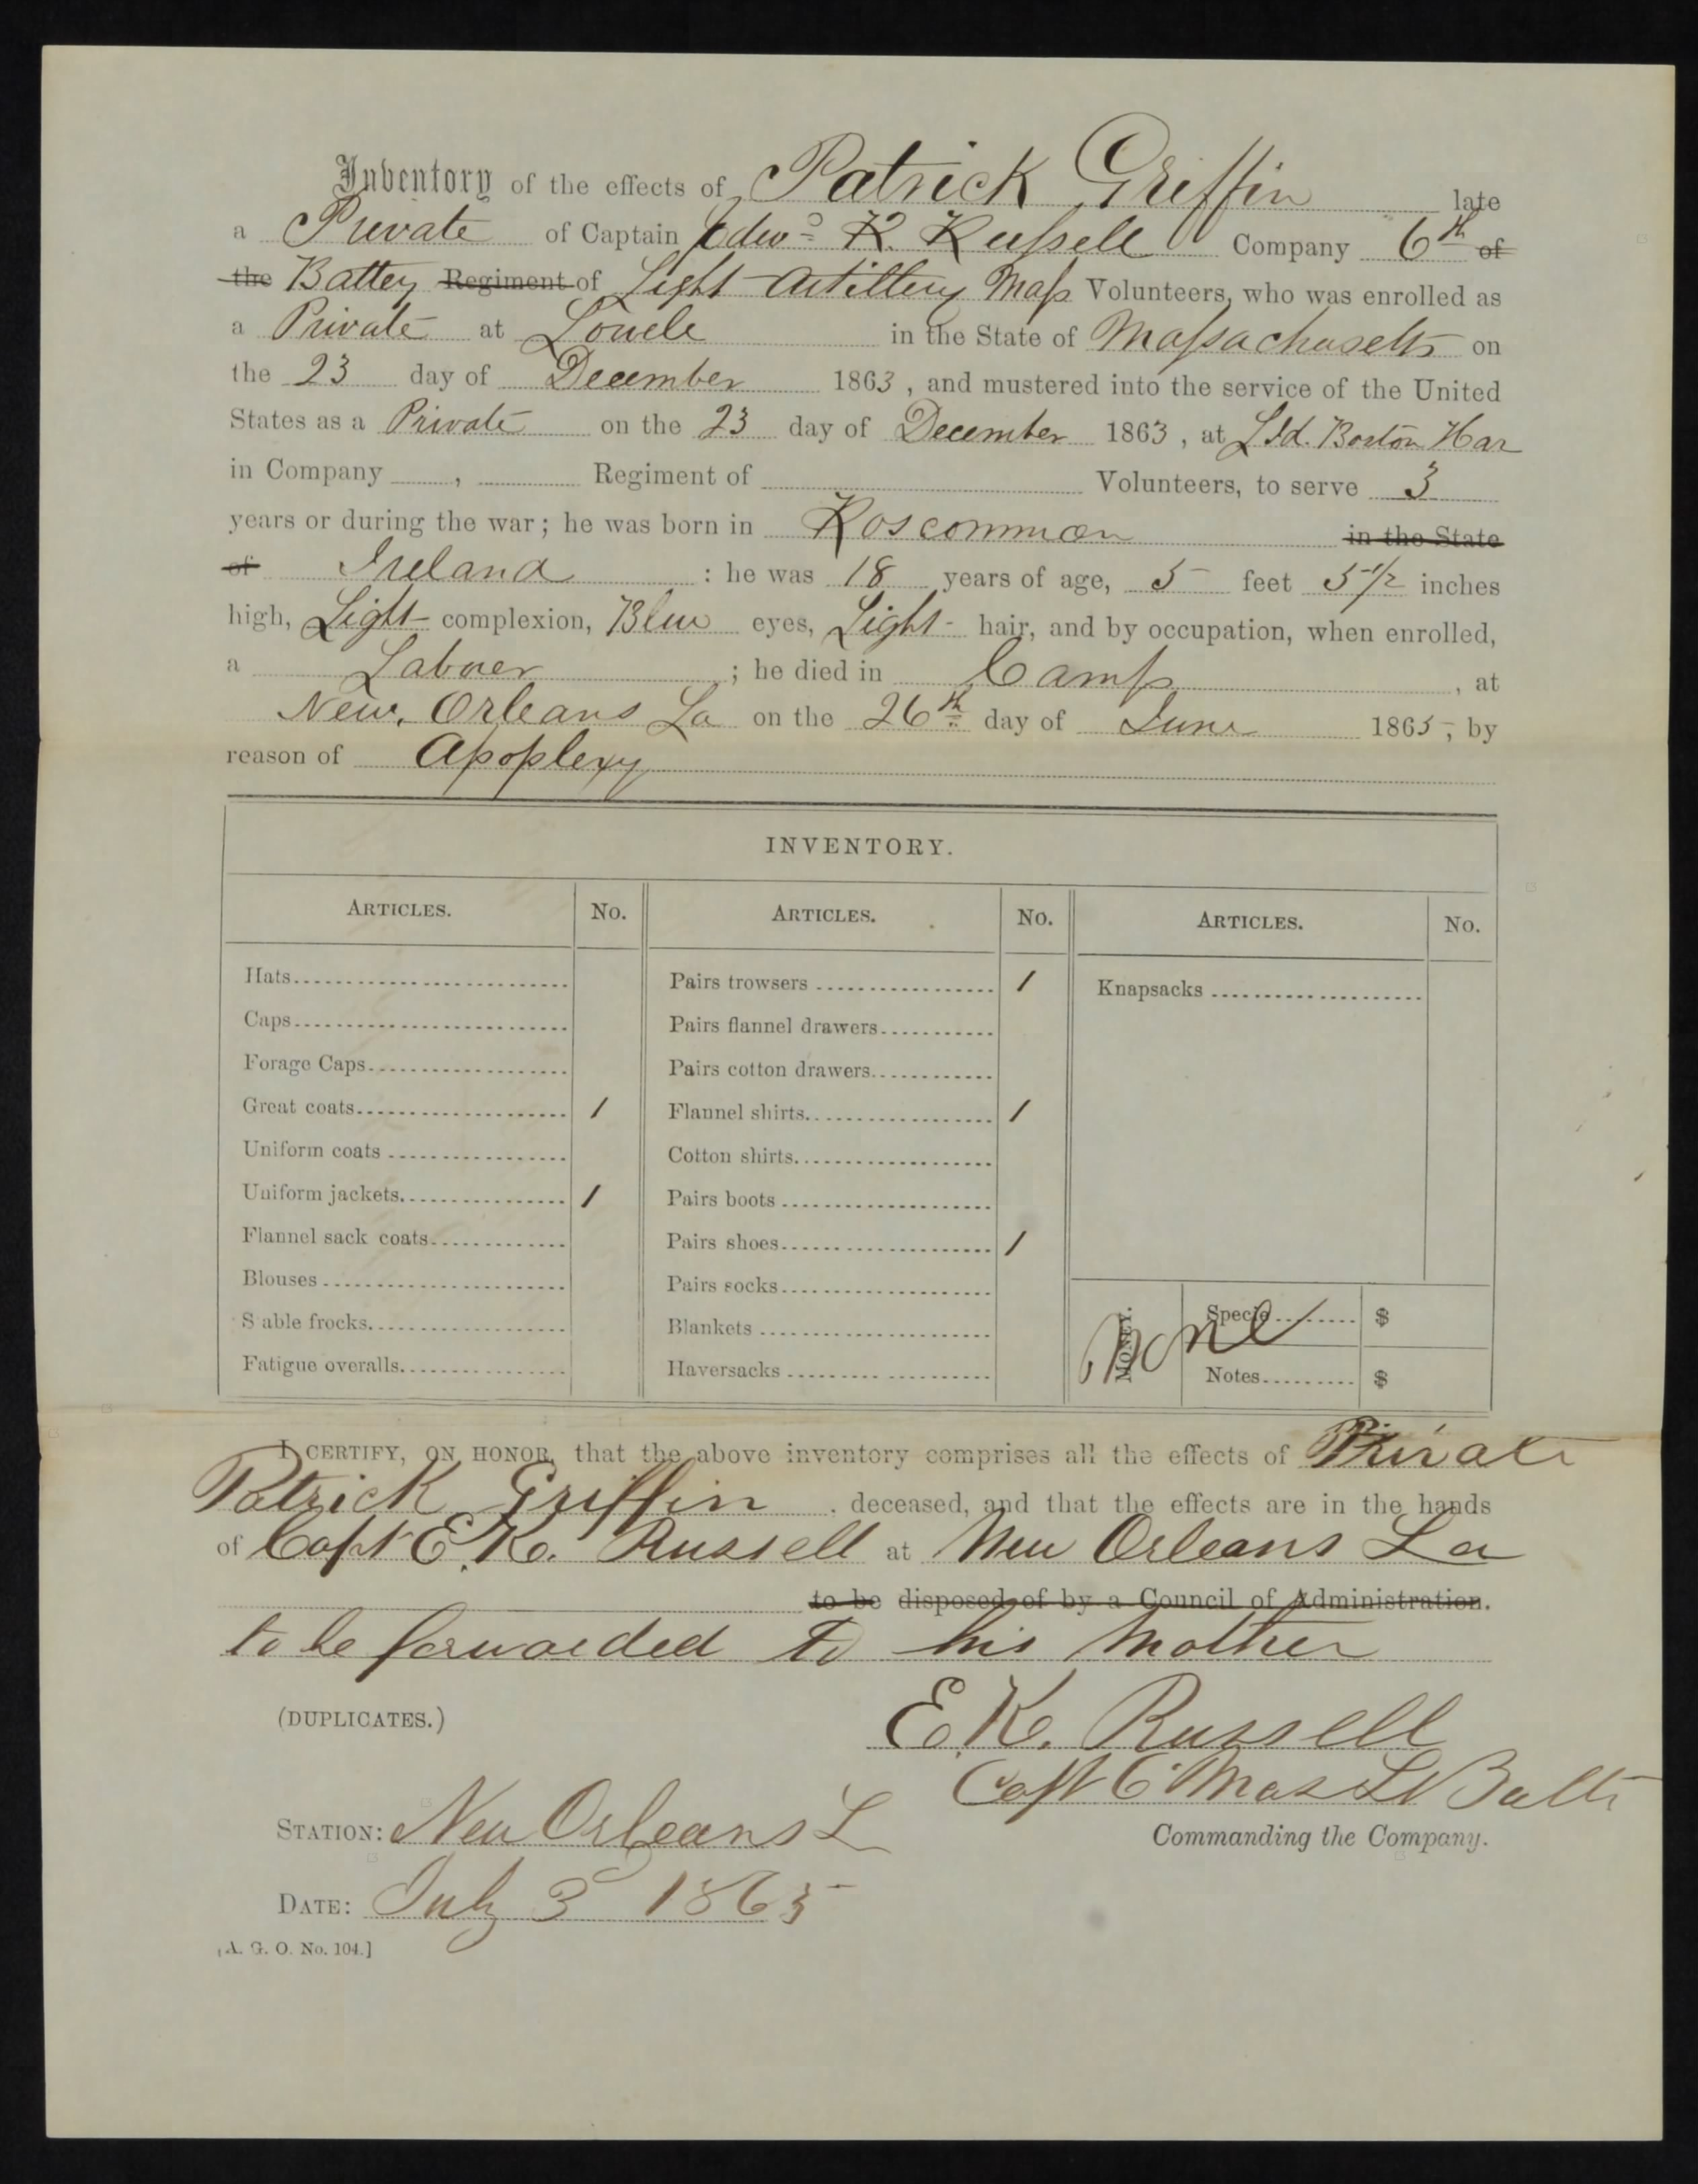 Patrick's Final Statement, which lists his possessions at the time of his death (Fold3/NARA)